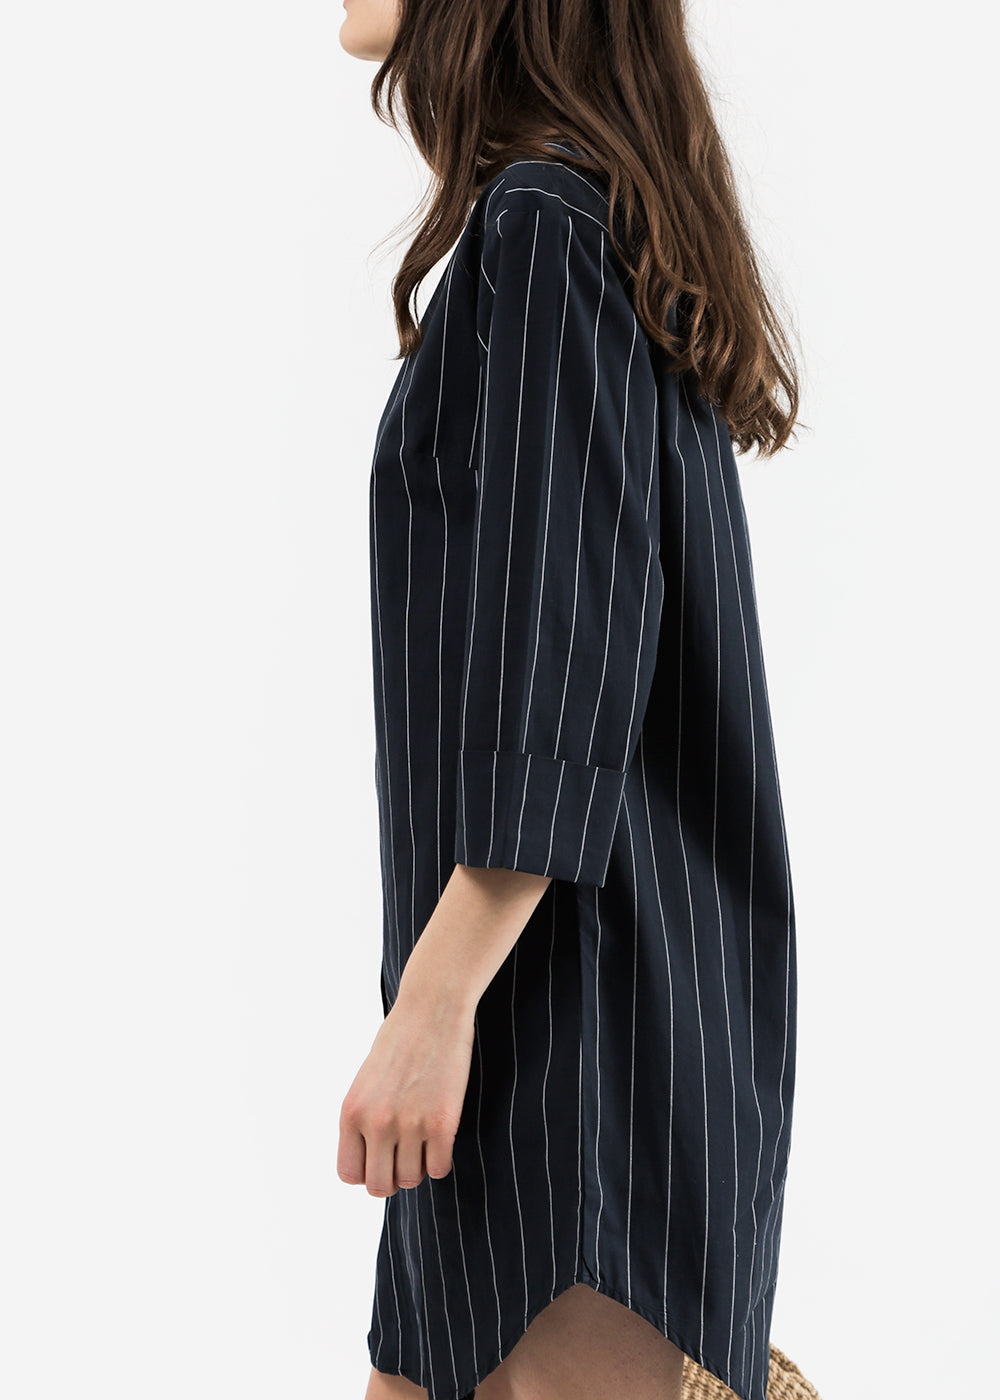 Kowtow Mirror Dress — Shop sustainable fashion and slow fashion at New Classics Studios